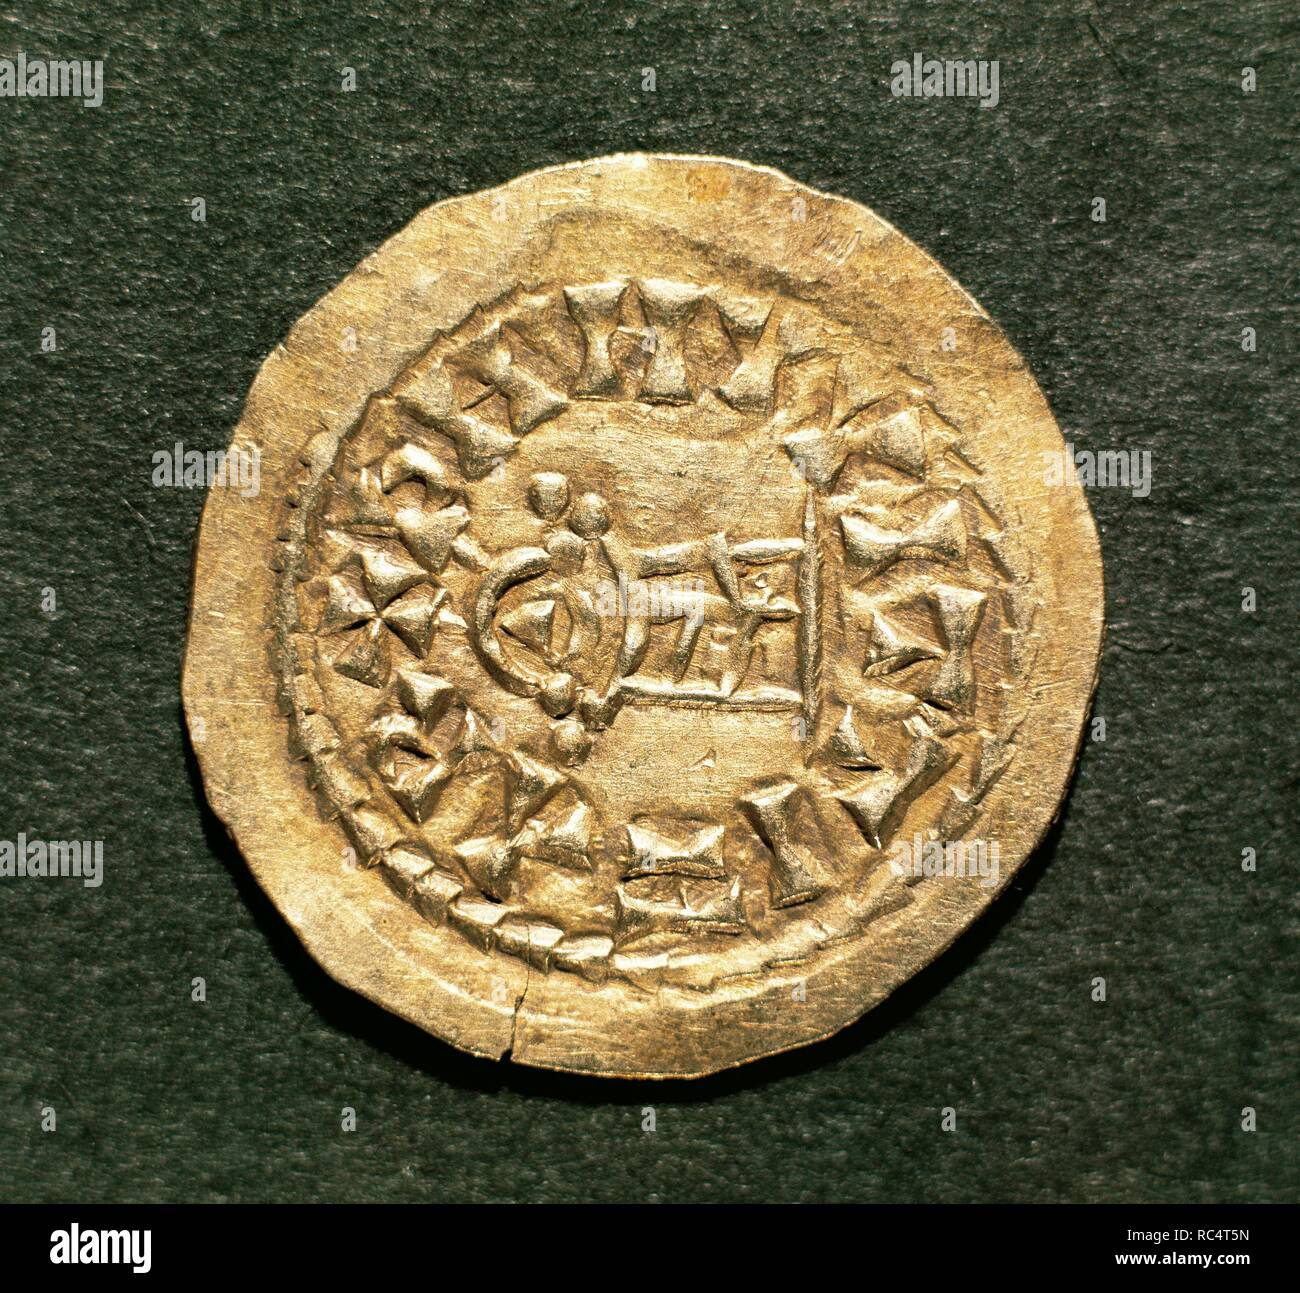 High Middle Ages. 5th-8th centuries. Iberian Peninsula. Visigoth coin. Gold. Spain. Numismatic Cabinet of Catalonia. National art Museum of Catalonia (MNAC), Barcelona, Spain. - Stock Image